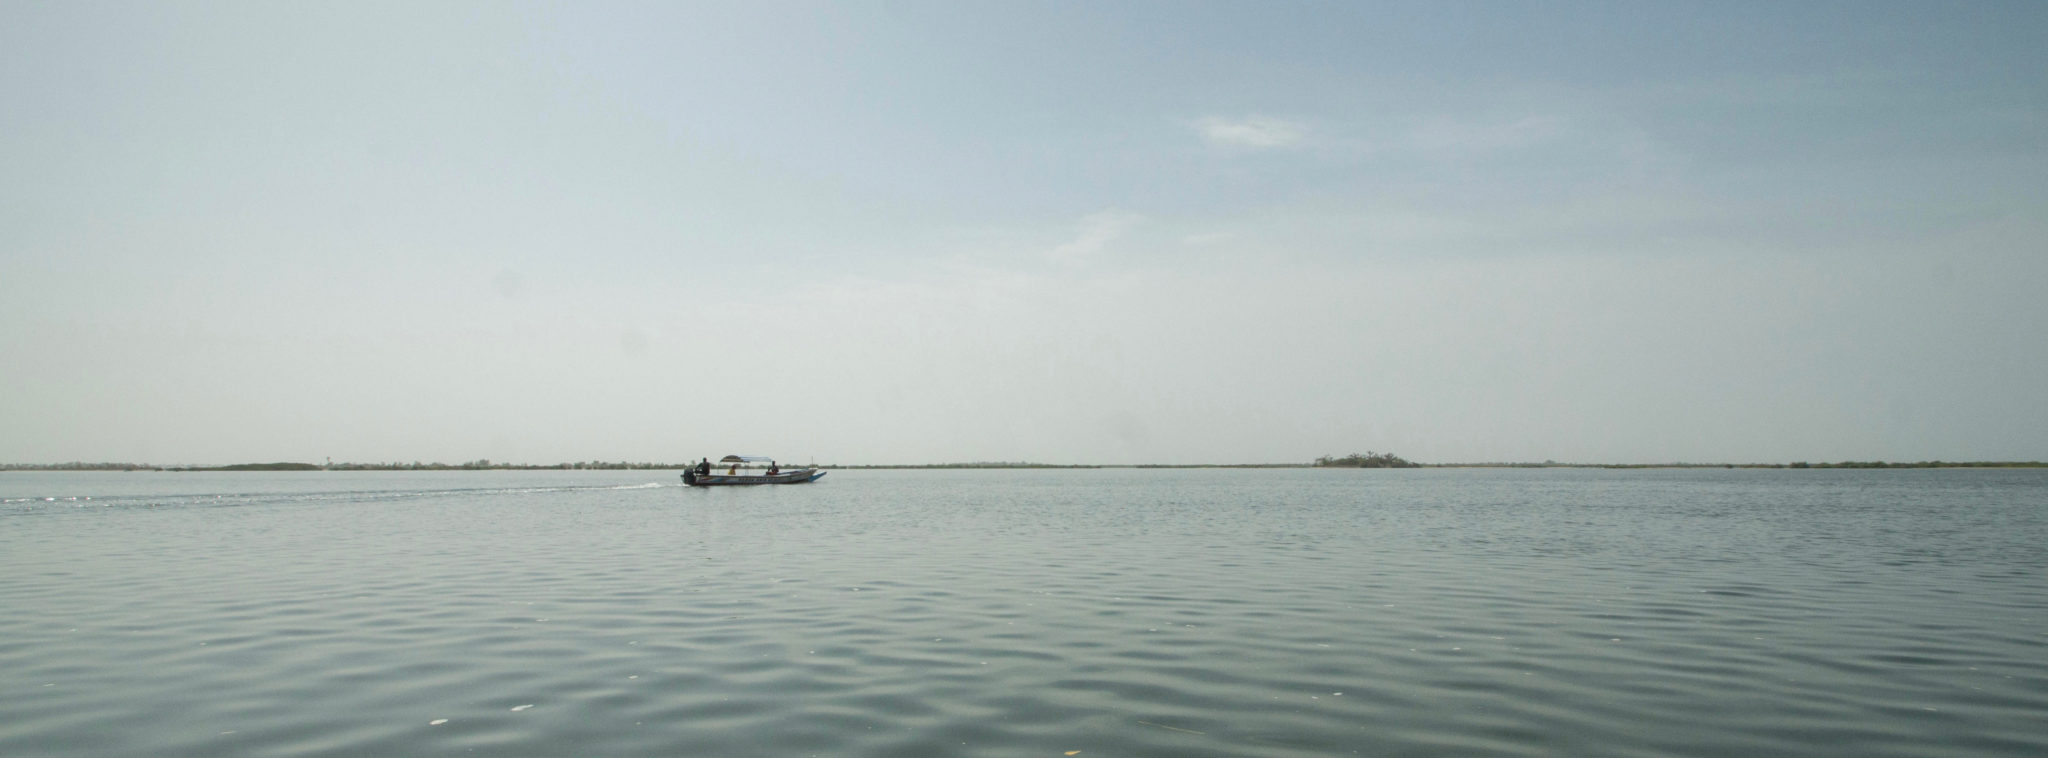 Calm and relaxing: Welcome to the Sine Saloum Delta in Senegal